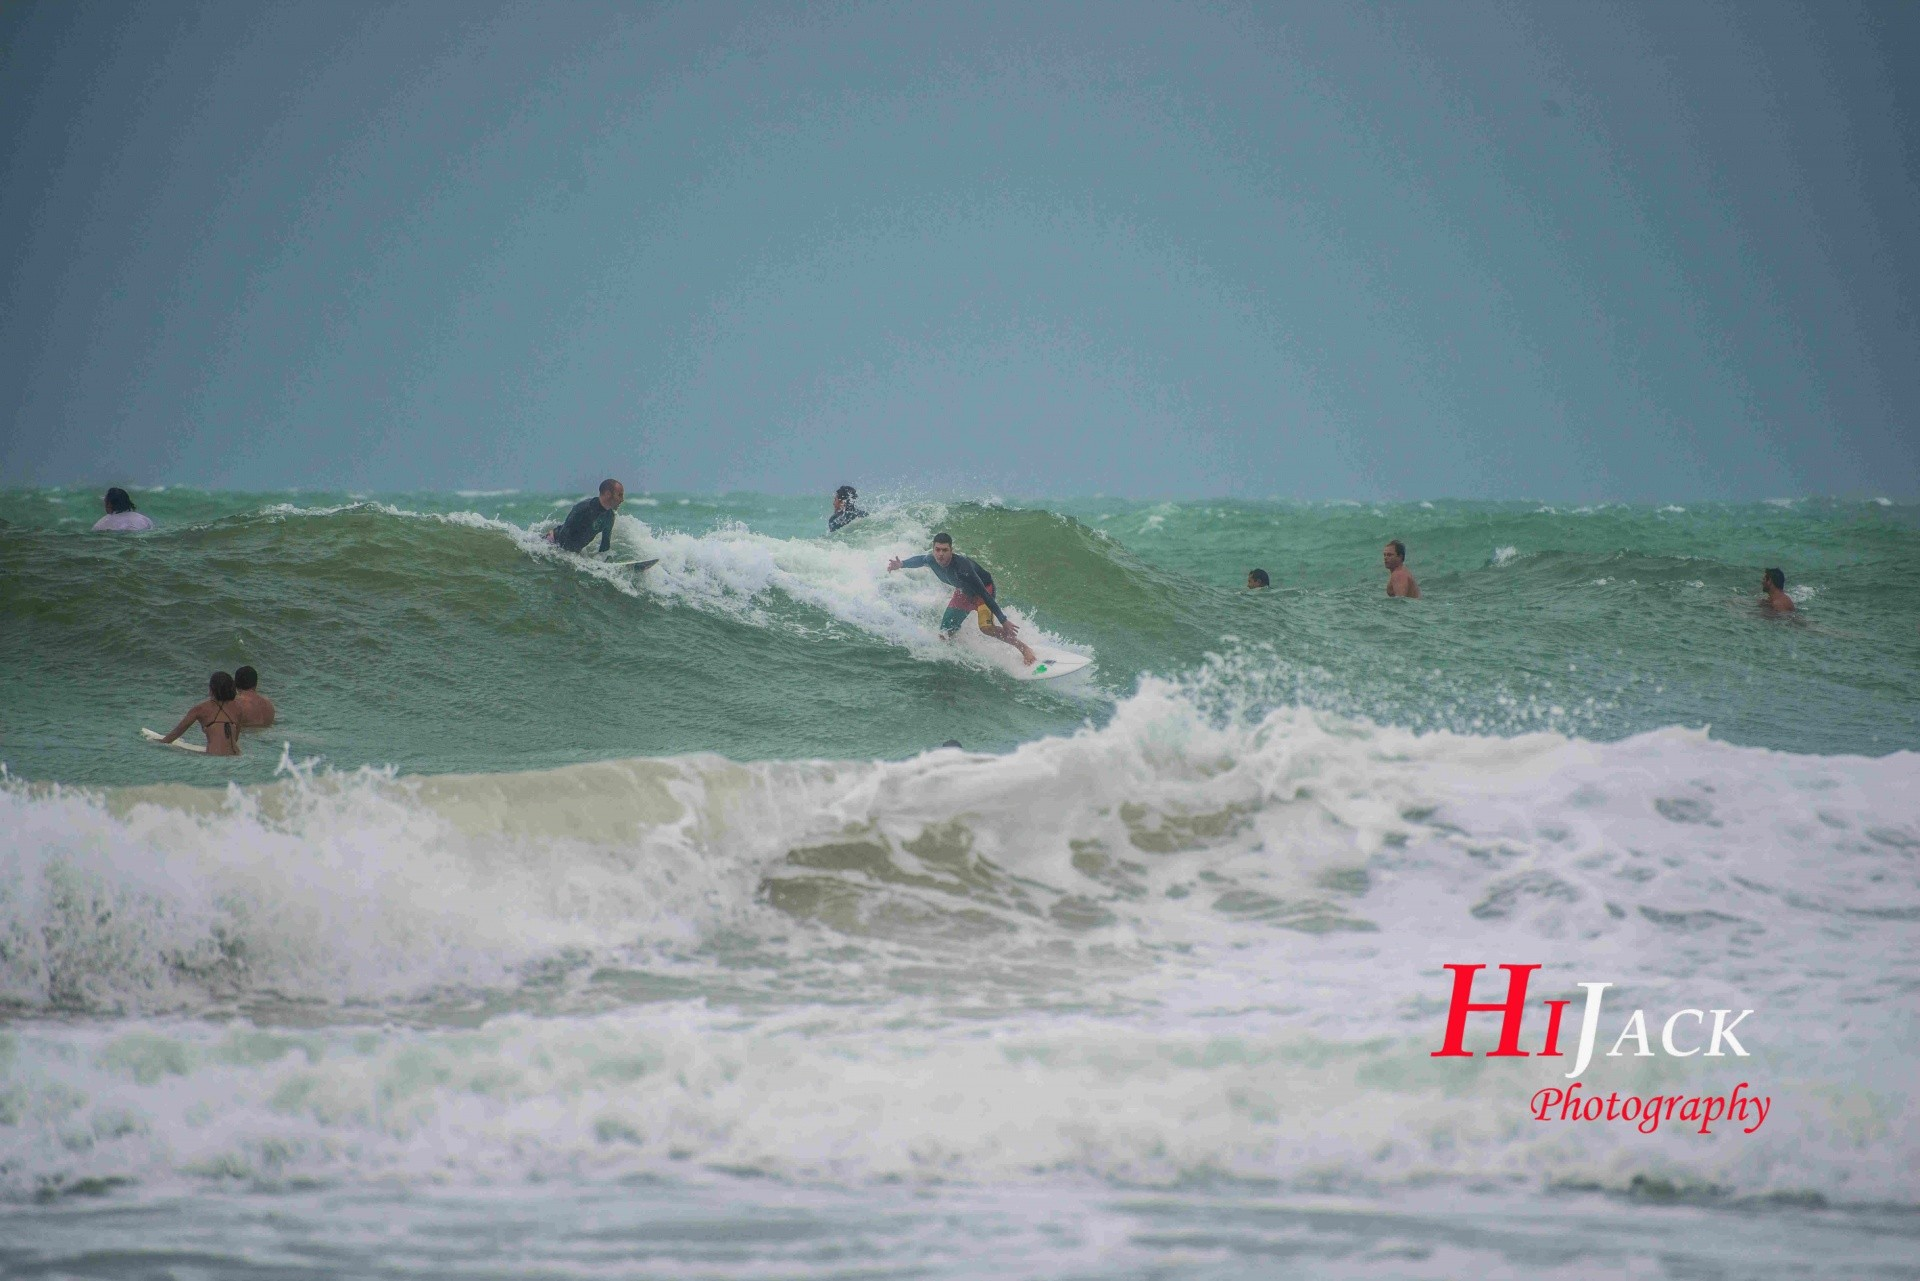 HiJack Photography's photo of Haulover